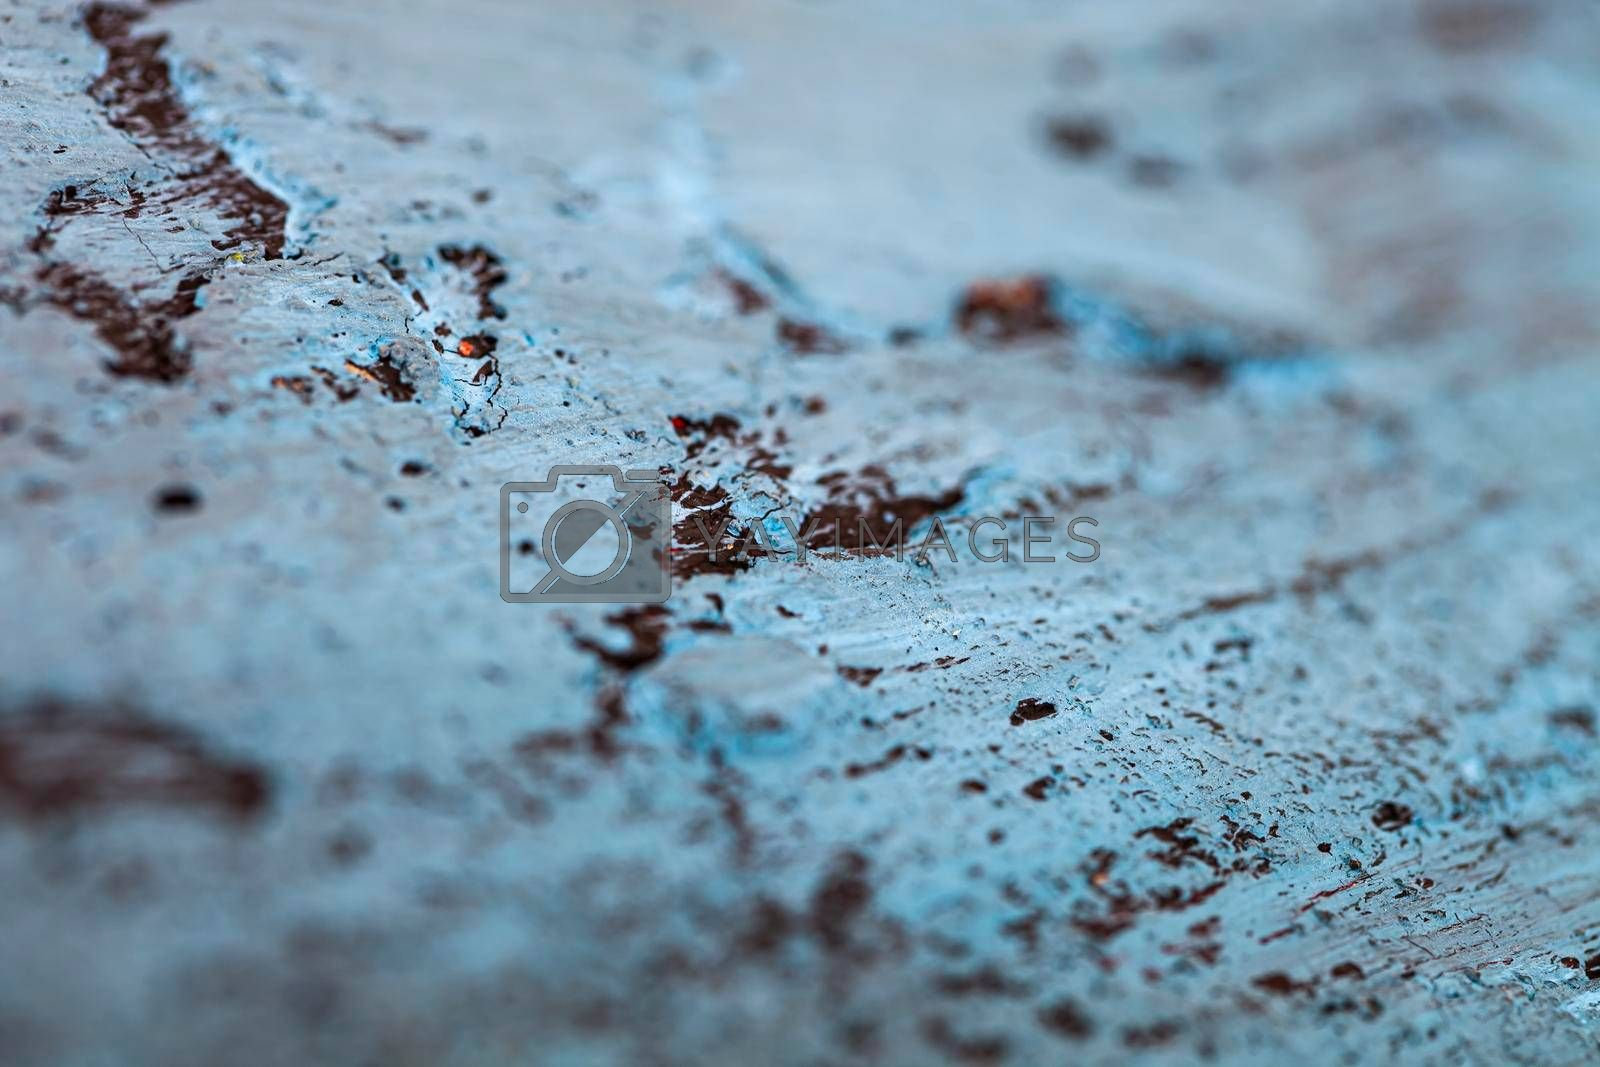 Texture of the concrete wall. Blue and black colors. Backgrounds Textures.